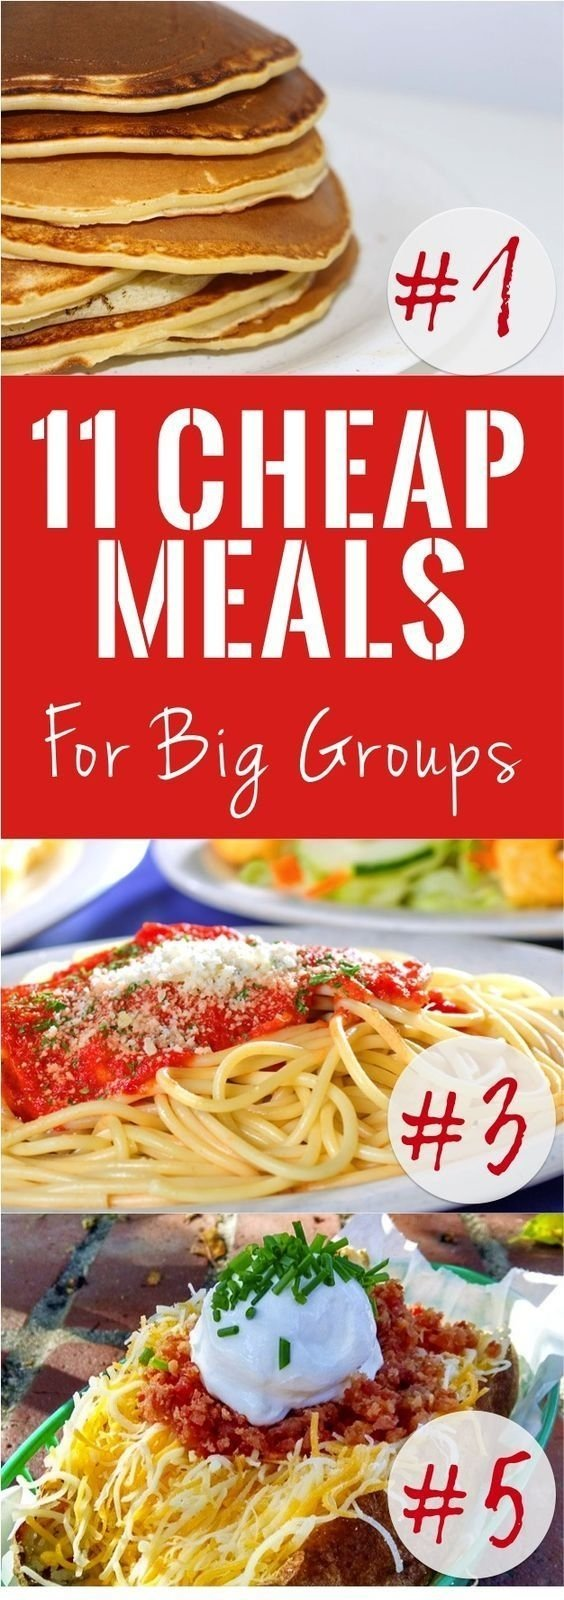 10 Nice Menu Ideas For Large Groups cheap meals for feeding large groups 2021